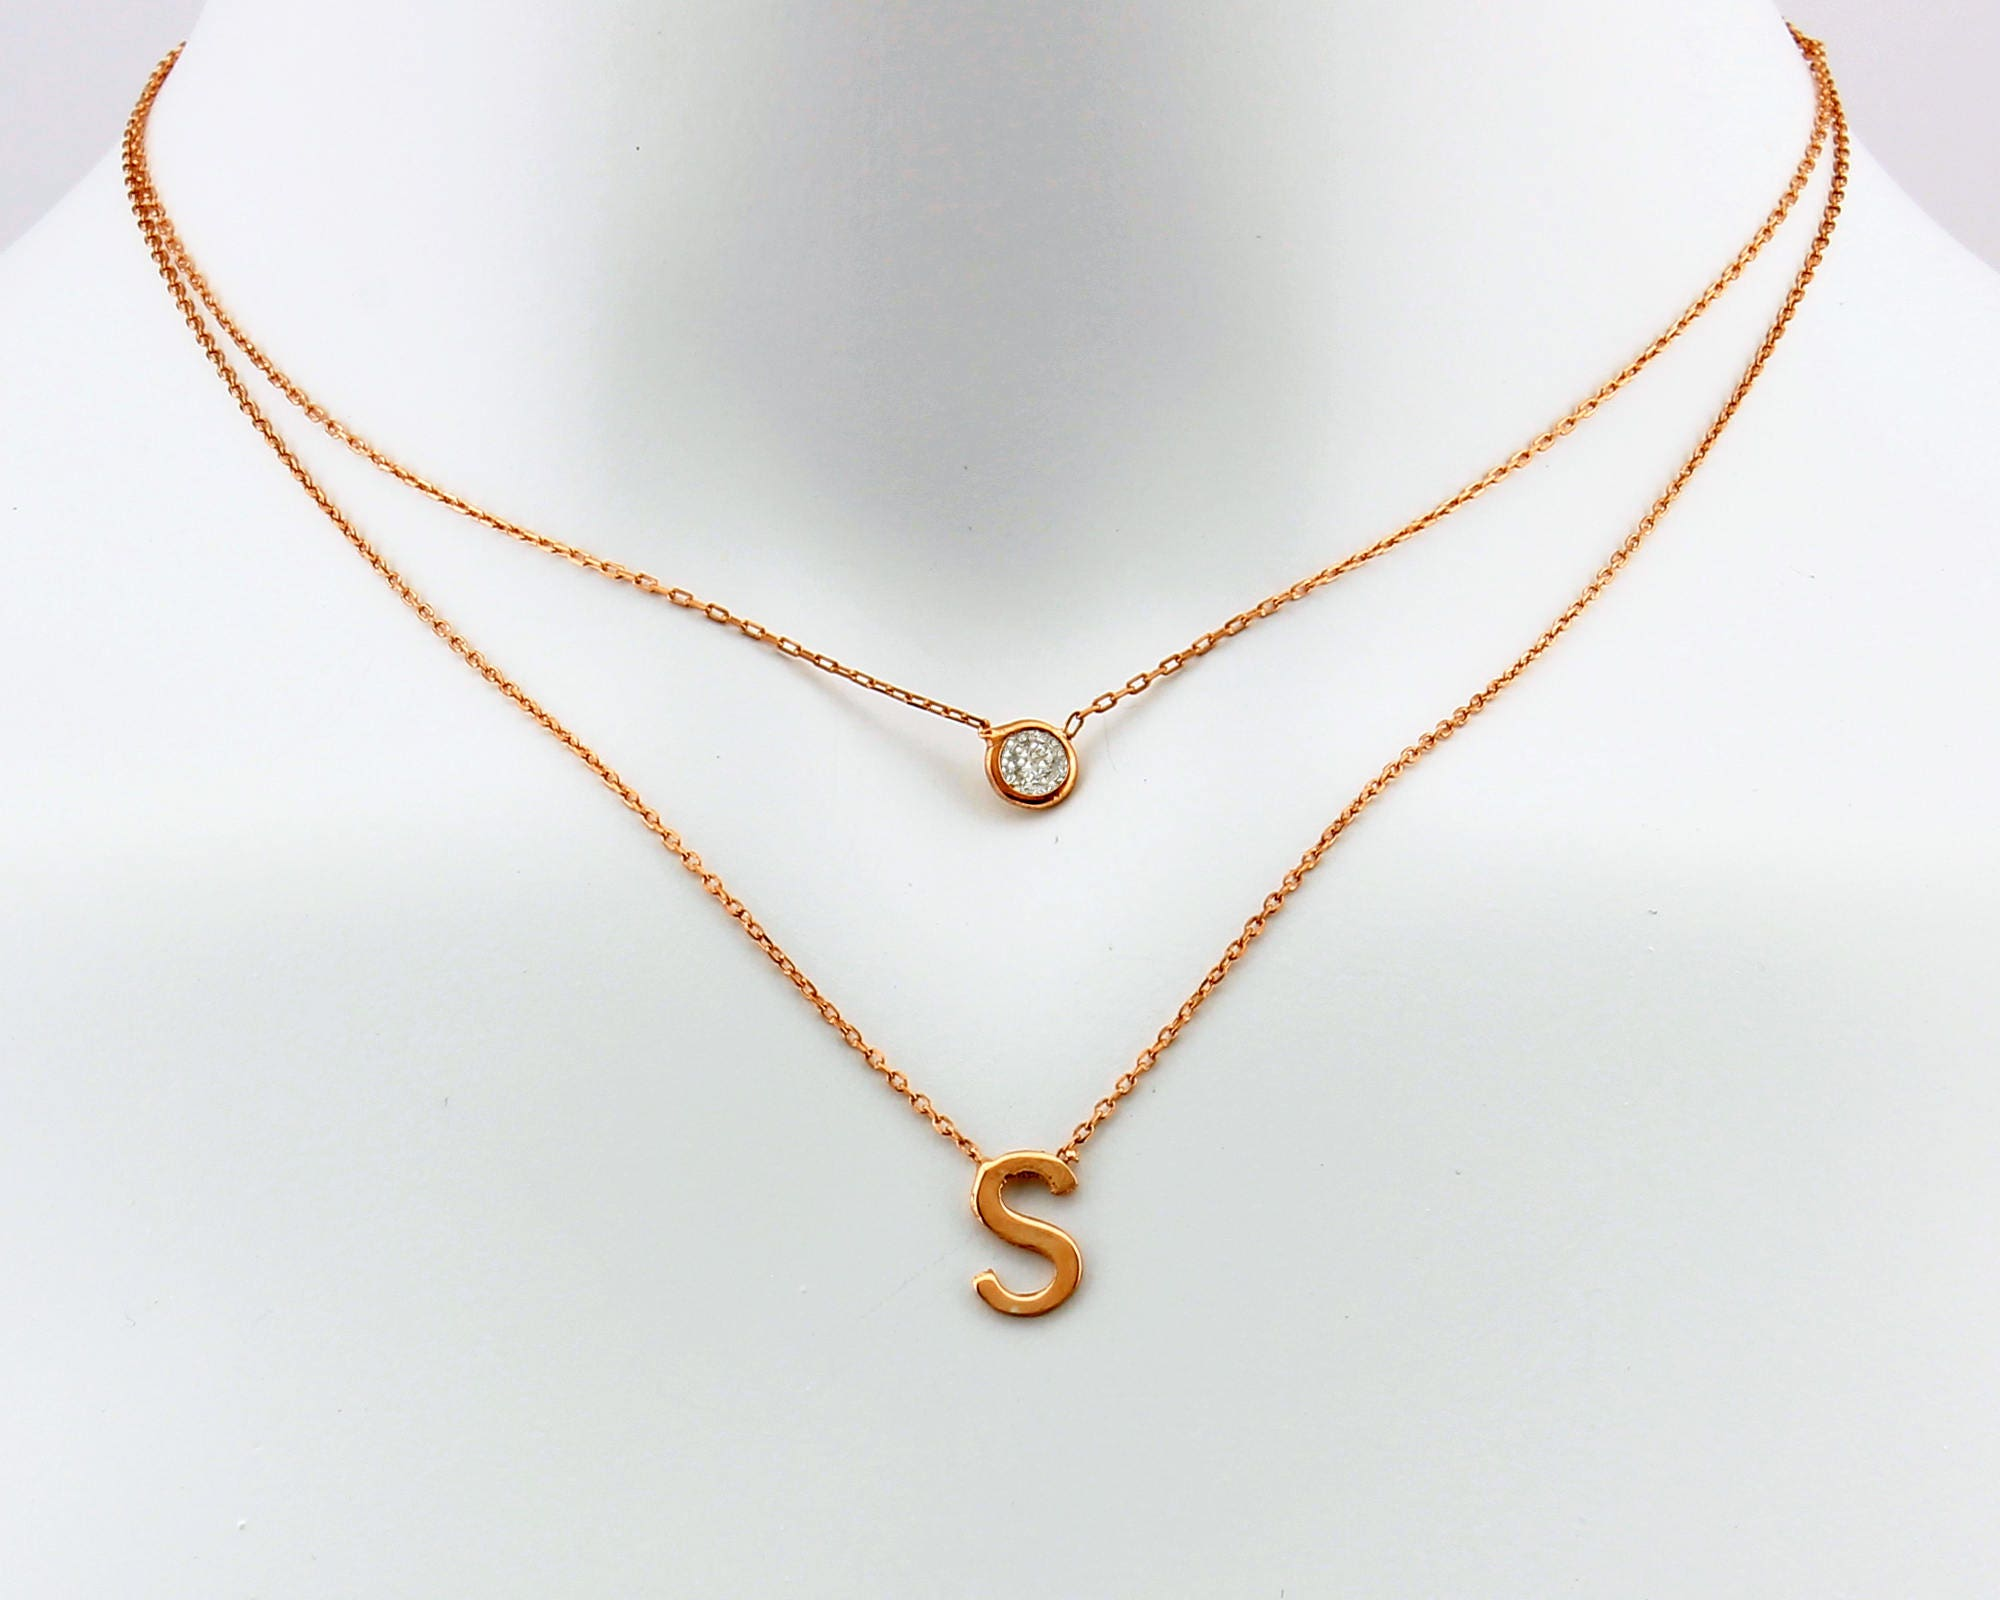 Personalized necklace initial necklace layered necklace personalized necklace initial necklace layered necklace birthstone necklace multi strand best selling items best selling double chain aloadofball Image collections